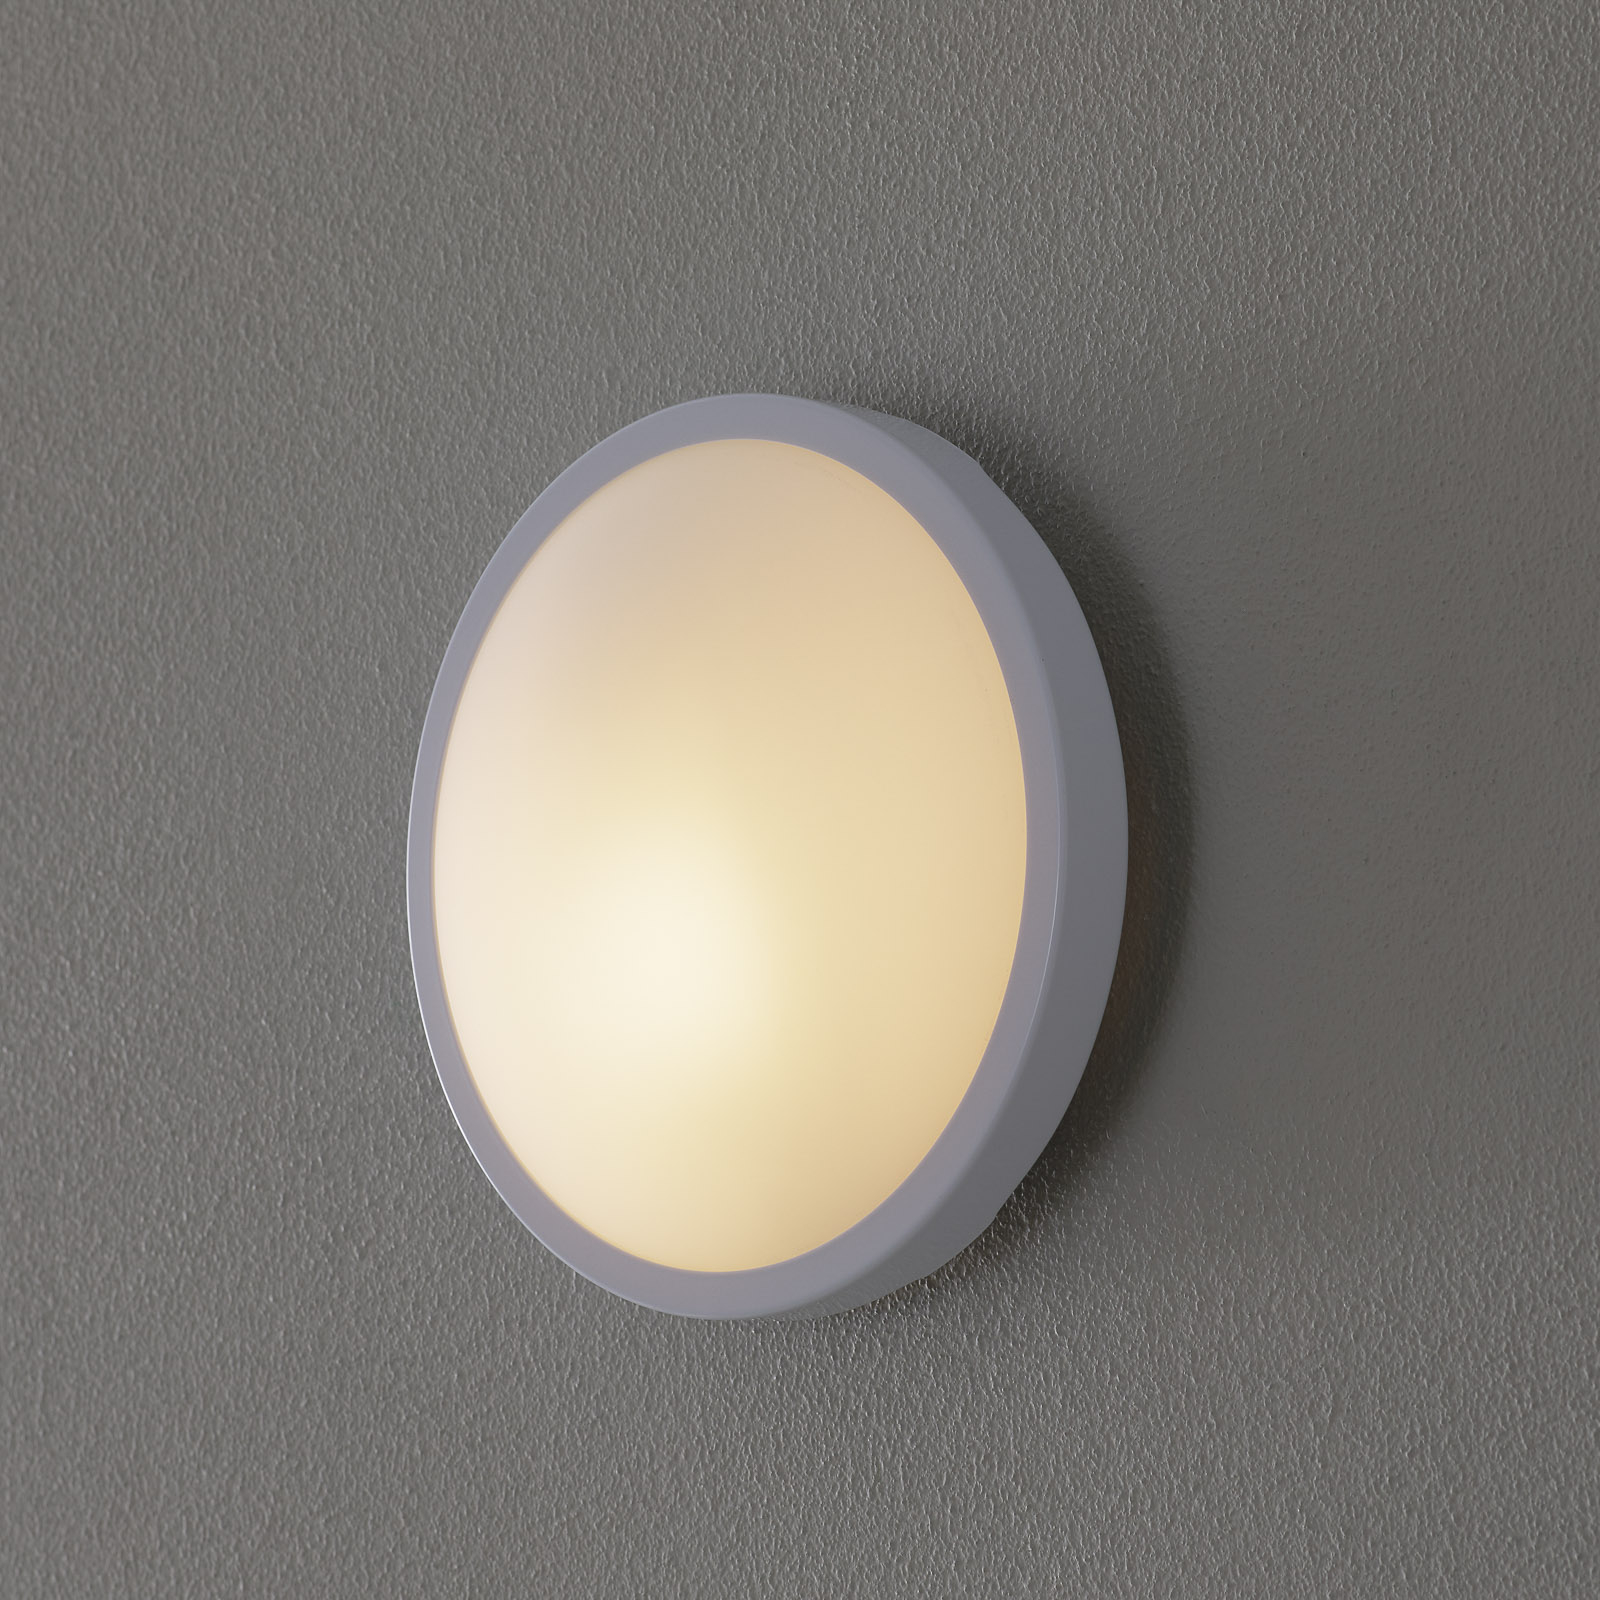 PLAZA ceiling and wall light 21.5 cm_3501687_1